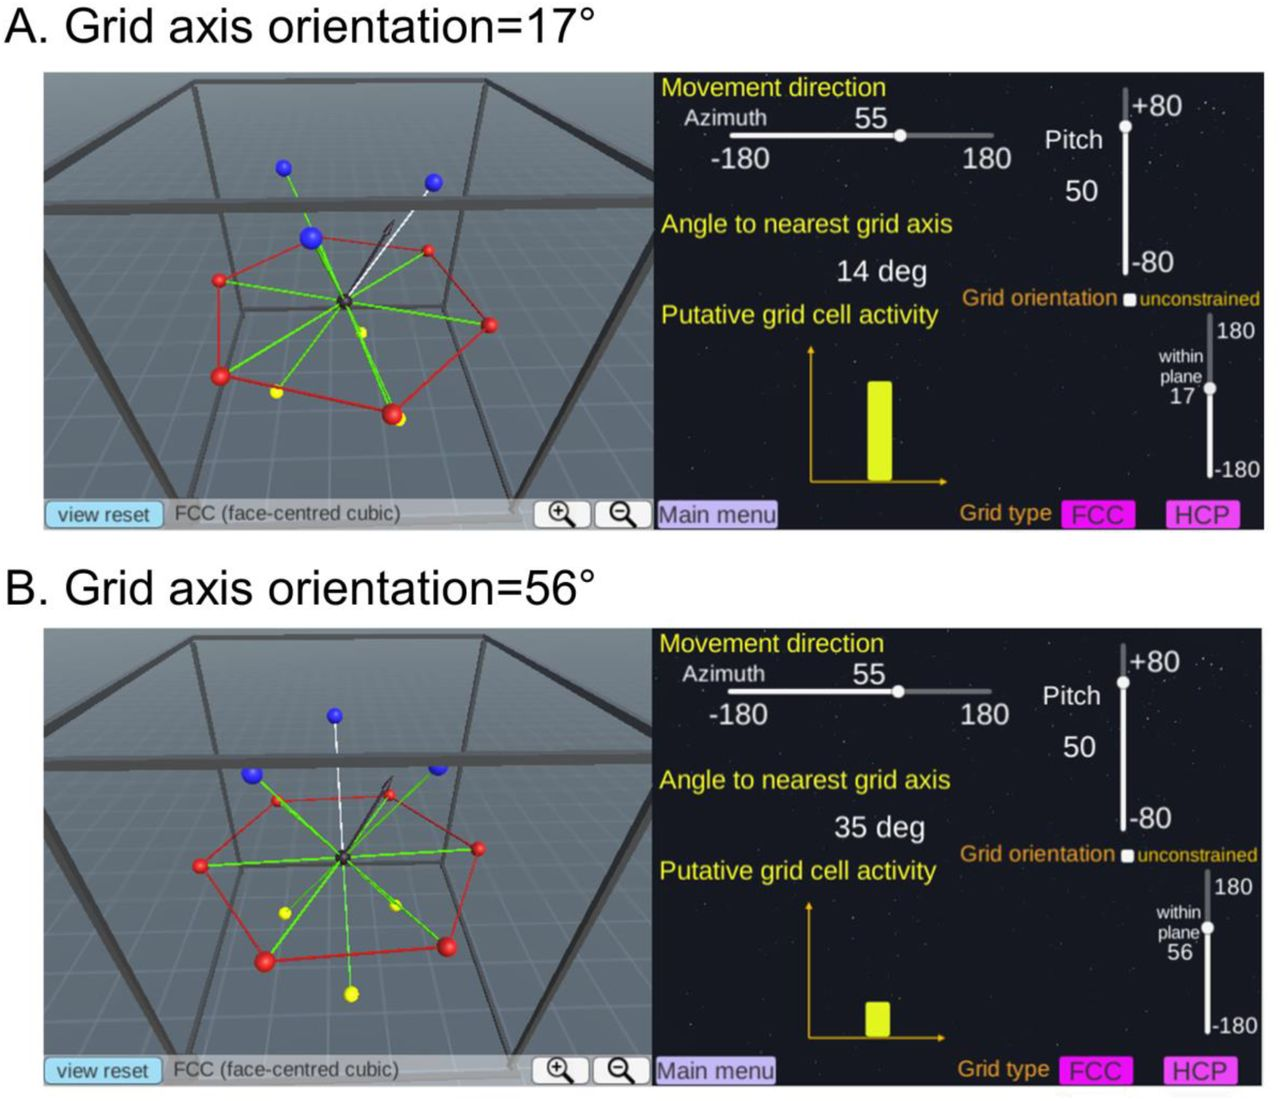 Can we study 3D grid codes non-invasively in the human brain